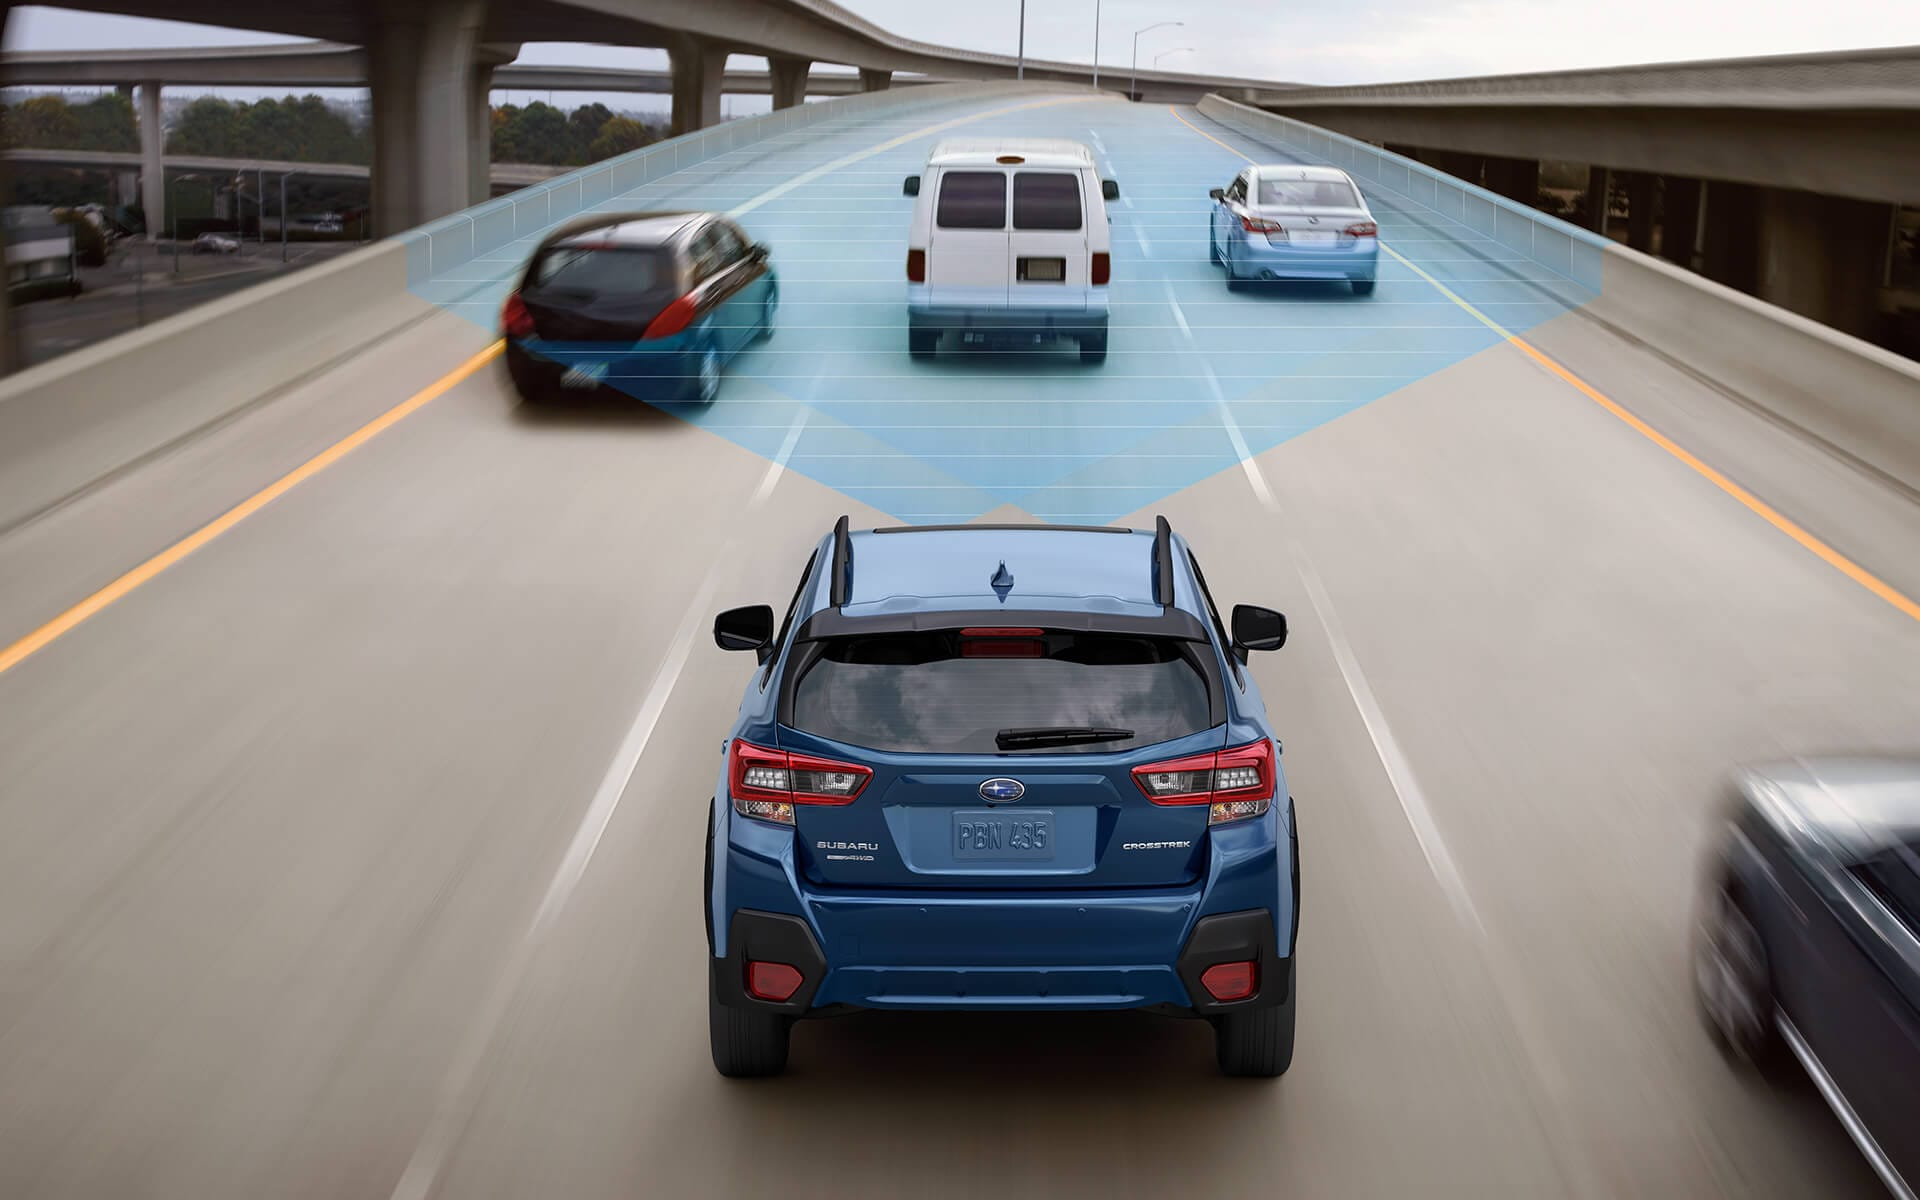 A 2020 Crosstrek driving on a freeway with the EyeSight® Driver Assist Technology sensors illustrated with blue overlay.